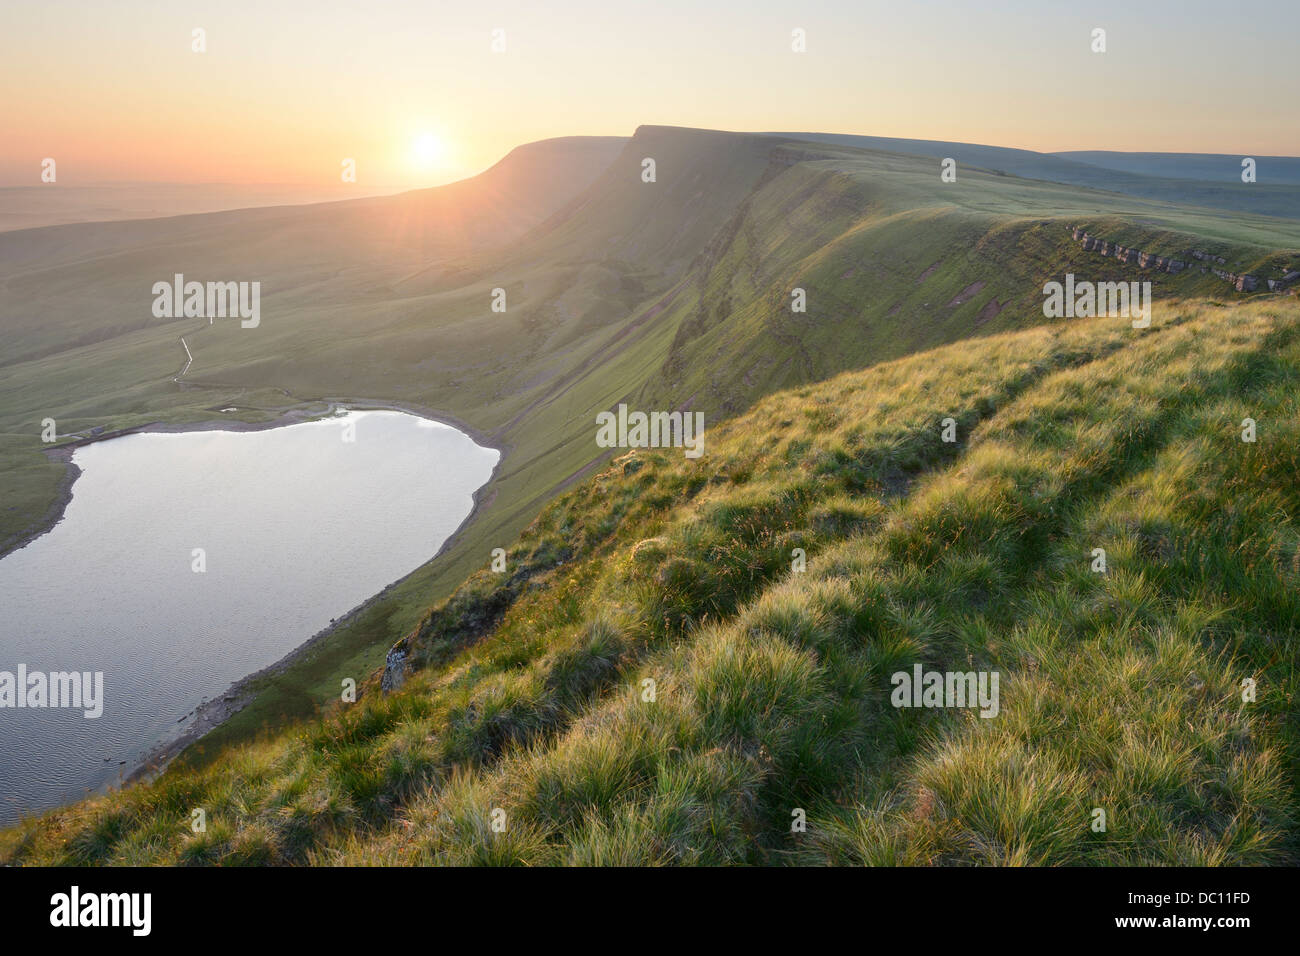 Sunrise, photographed from the peaks of the Black Mountain, on the border of Carmarthenshire and Powys, Wales, UK. - Stock Image